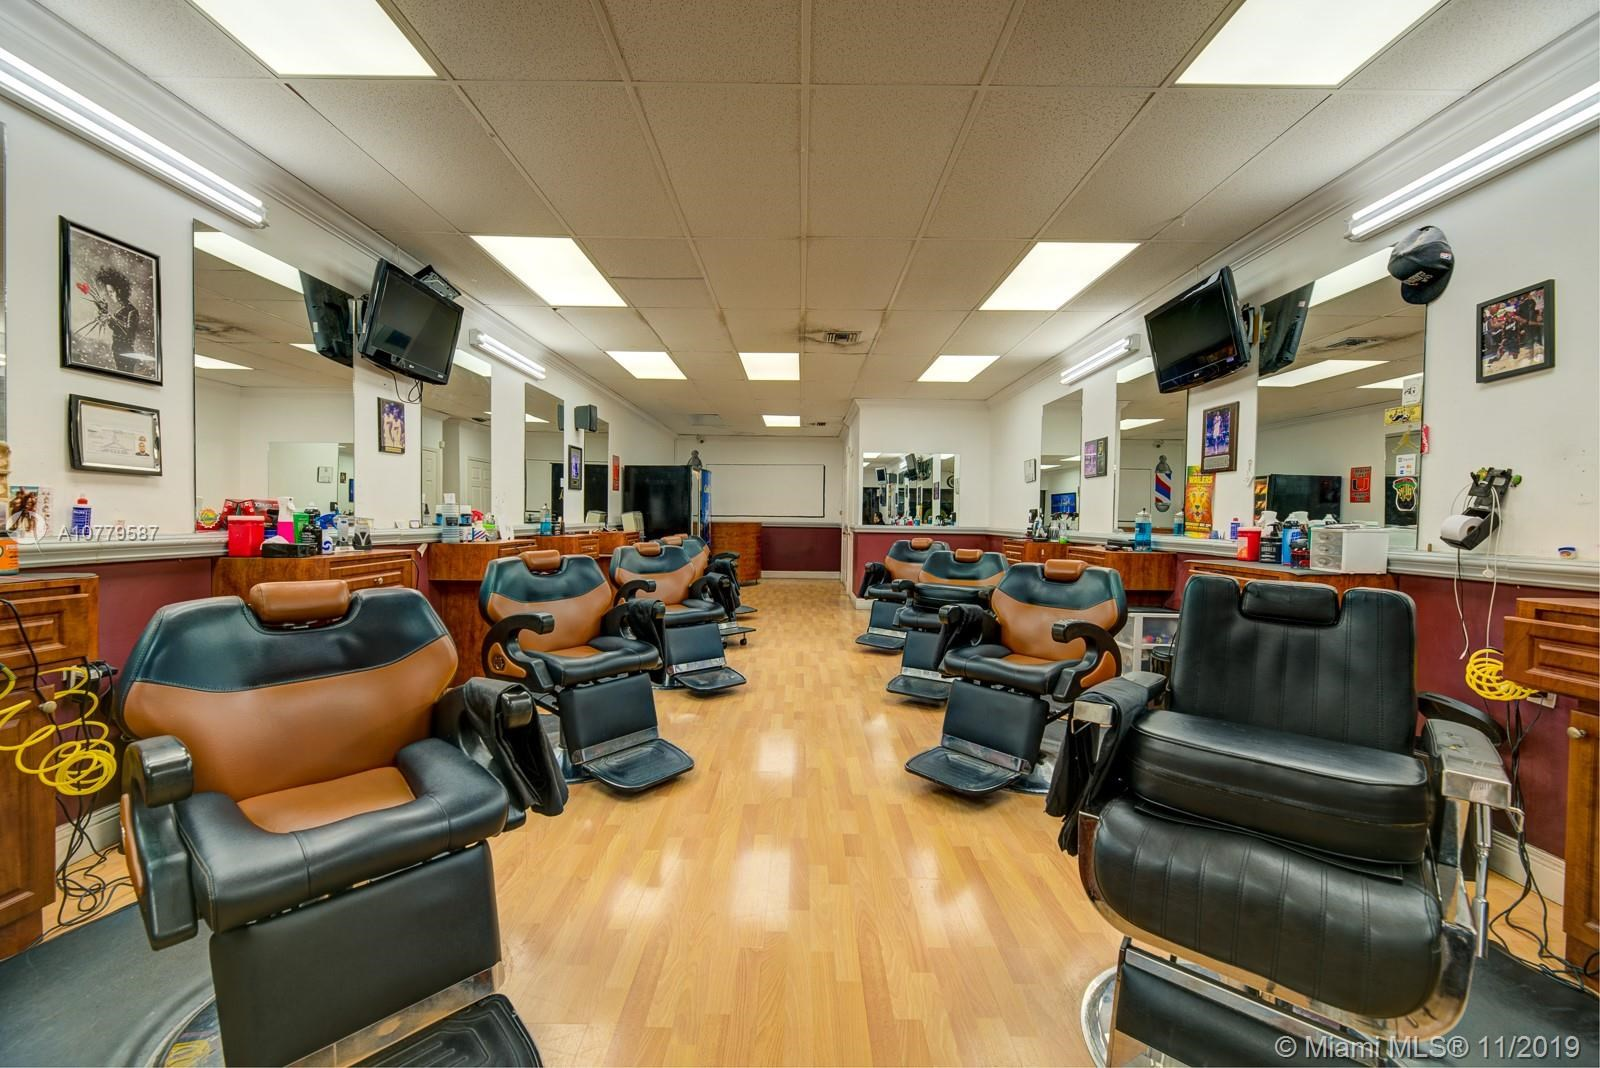 Barbershop  By Westchester, Miami, FL 33144